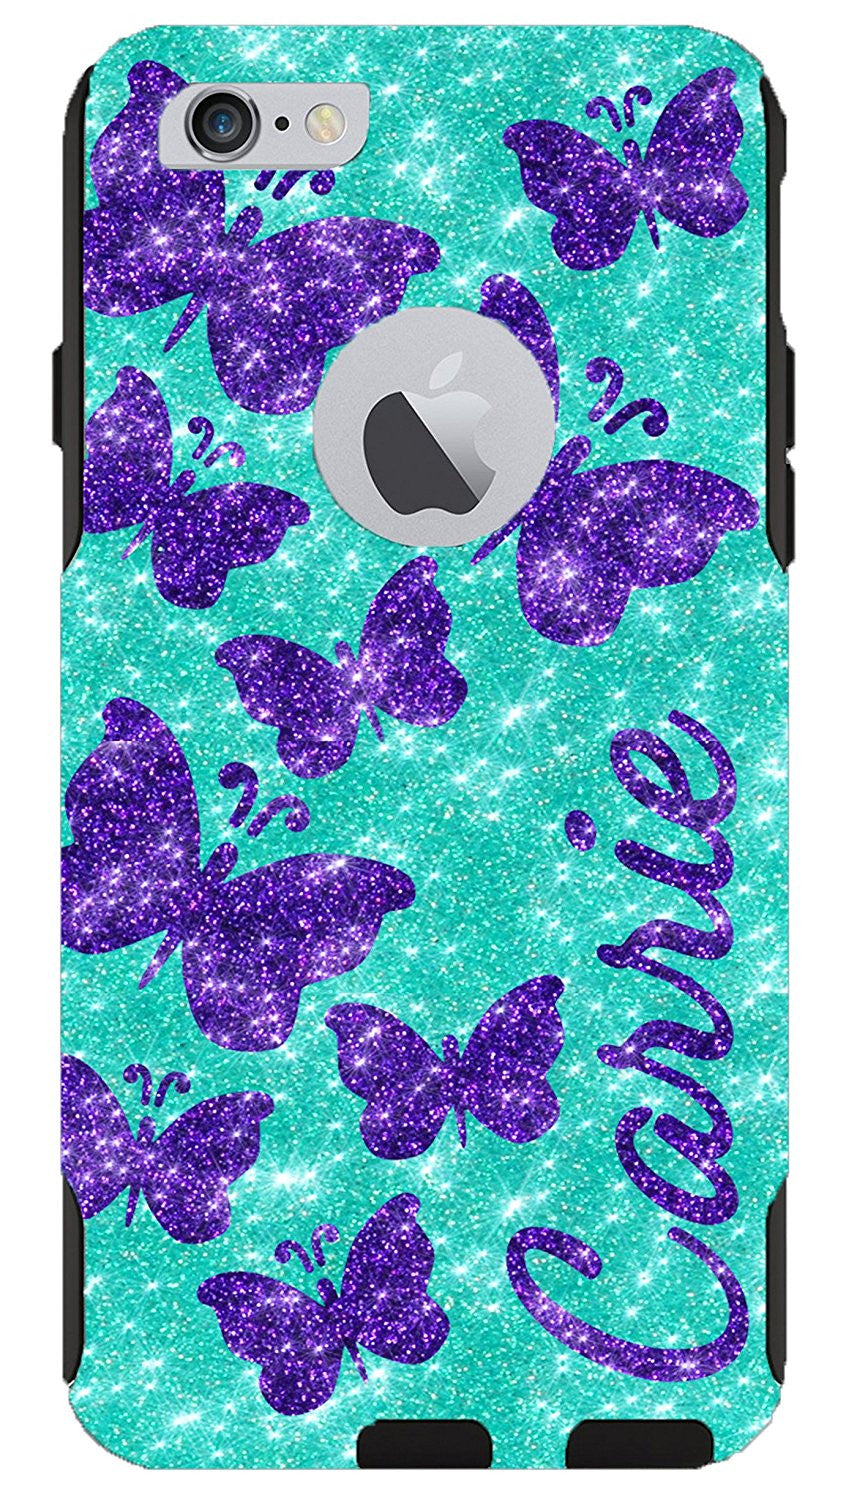 sports shoes b5ee6 85e46 iPhone 6 Plus 6s Plus Case - OtterBox Commuter Series Custom Glitter Case  for iPhone 6 Plus/6s Plus, Retail Packaging - Personalized Butterflies ...